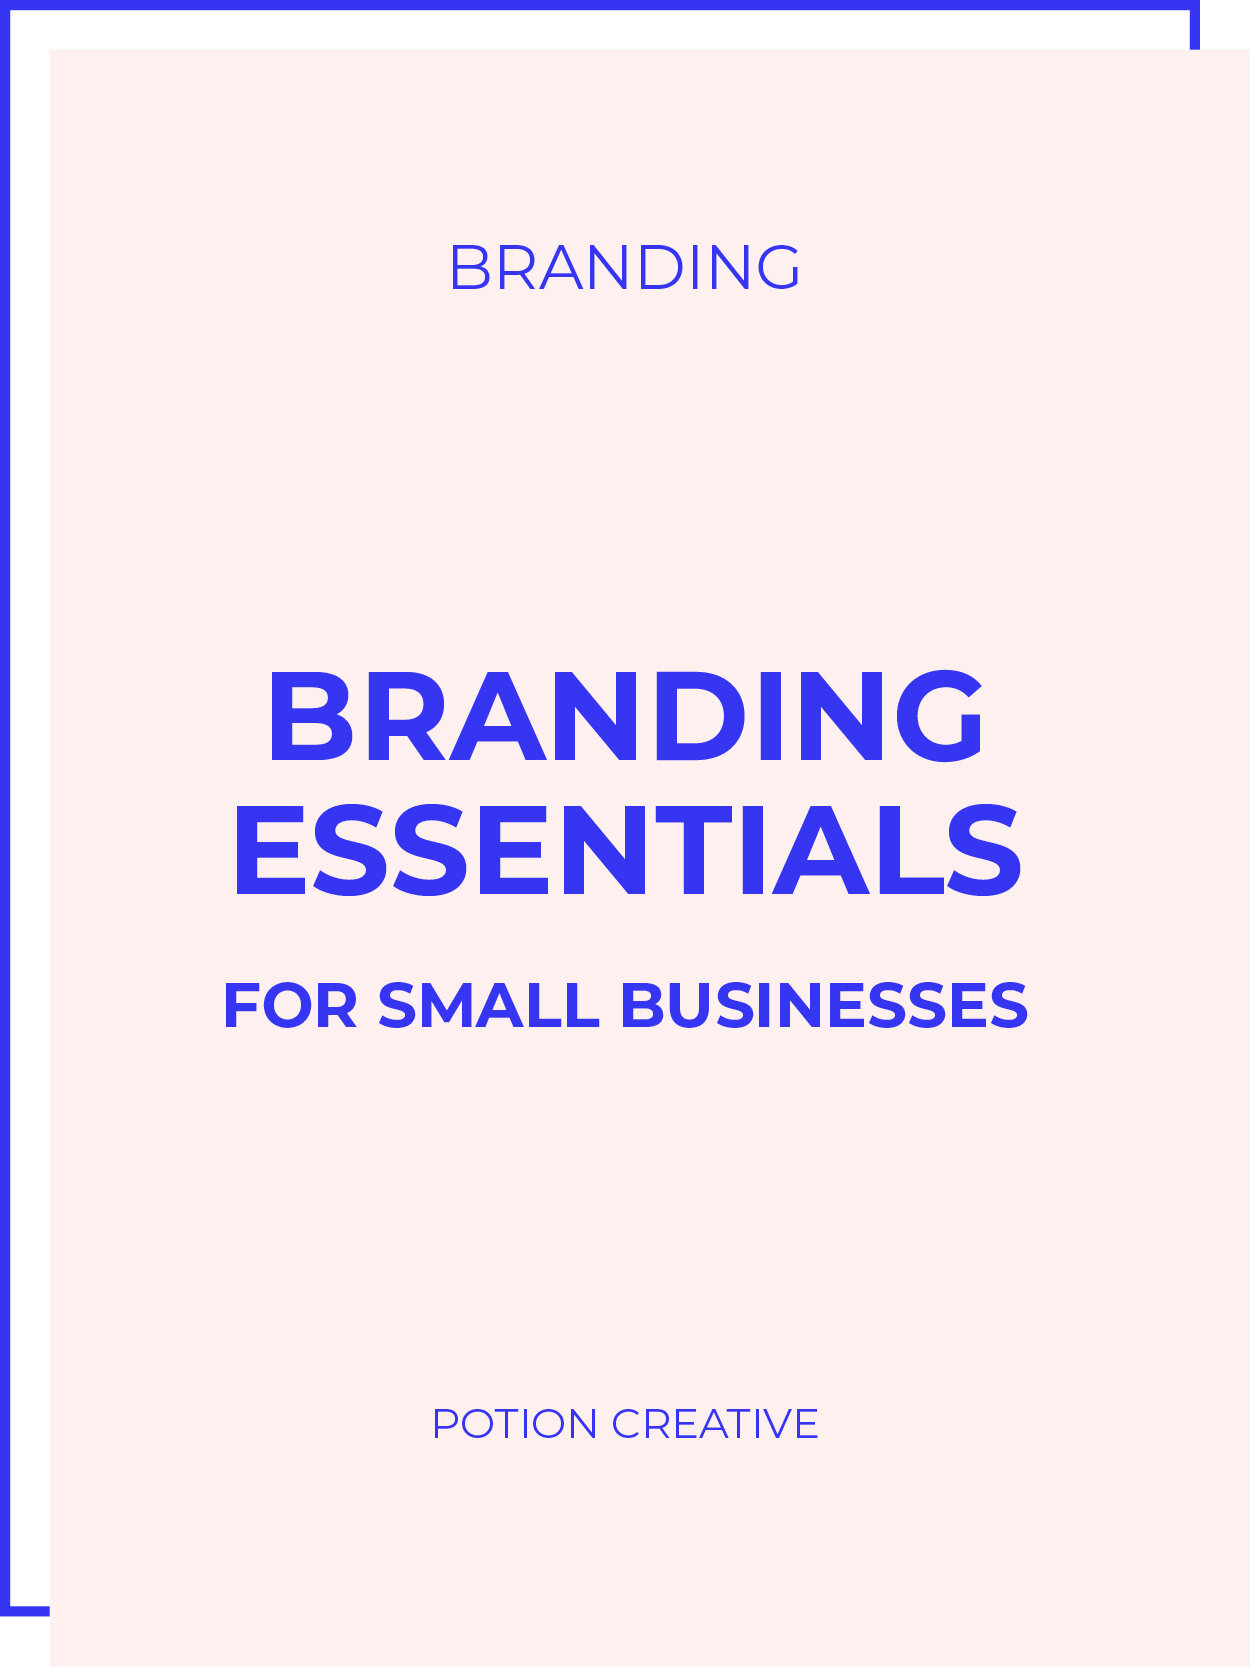 Potion Creative Blog Branding Essentials For Small Businesses.jpg